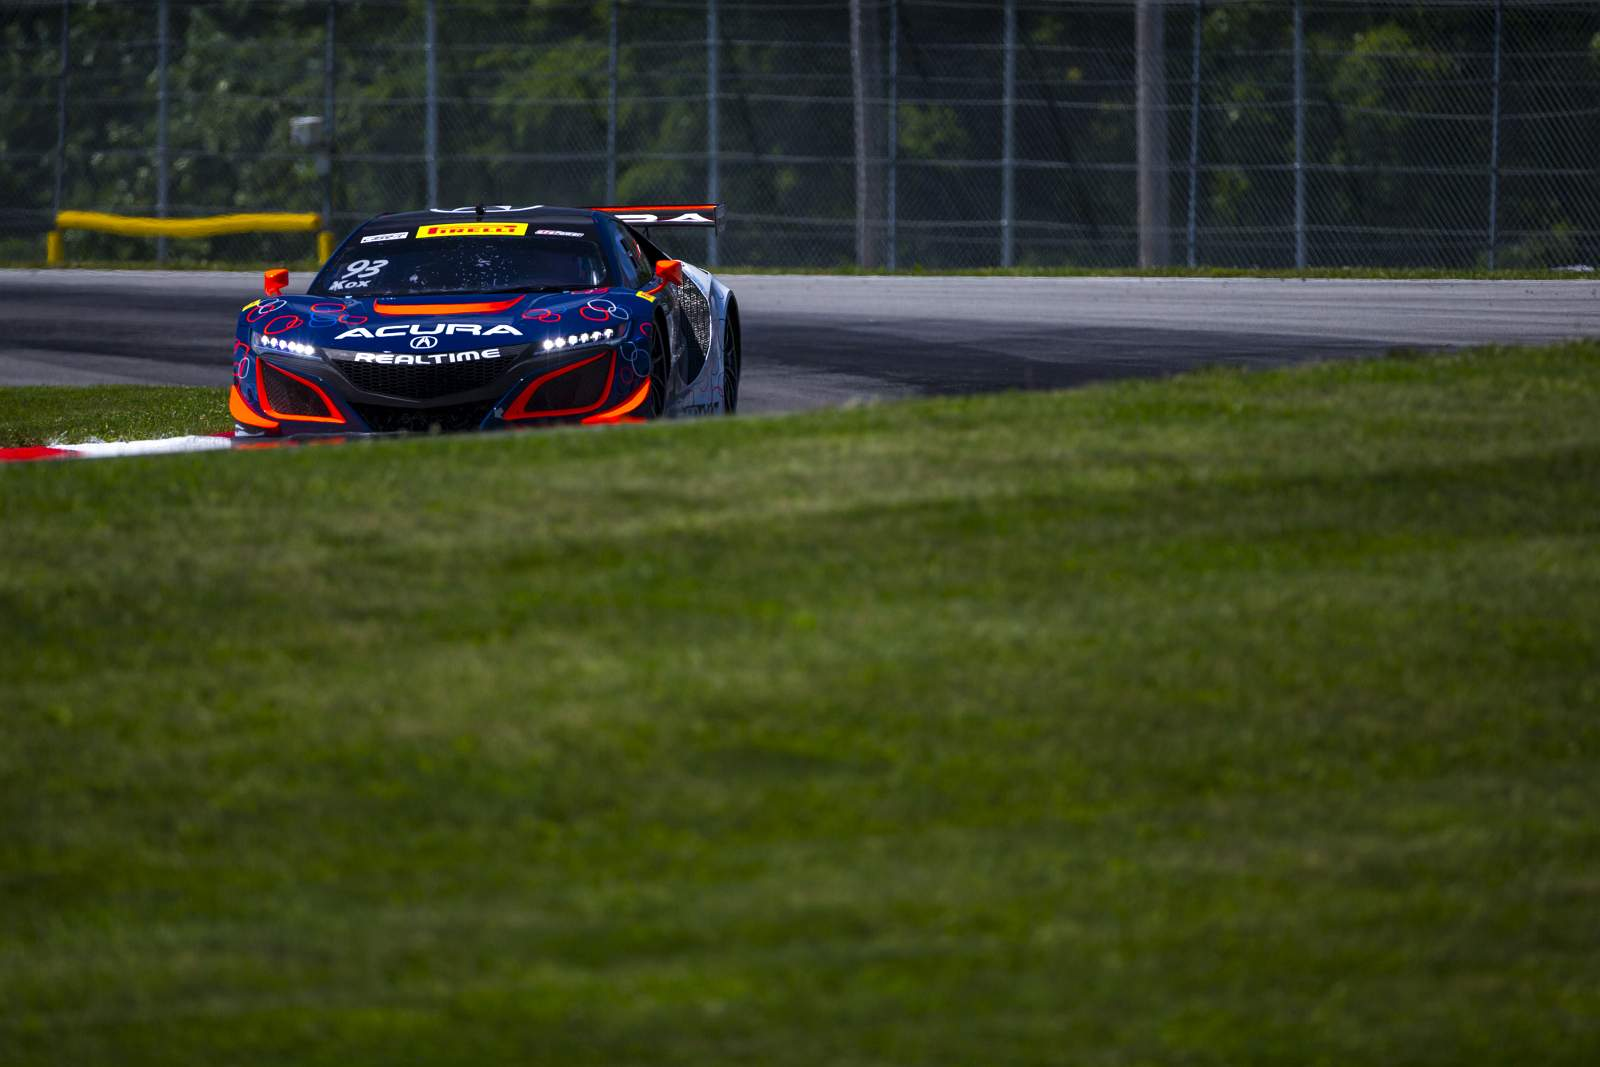 peter-kox-realtime-racing-pirelli-world-challenge-mid-ohio-105